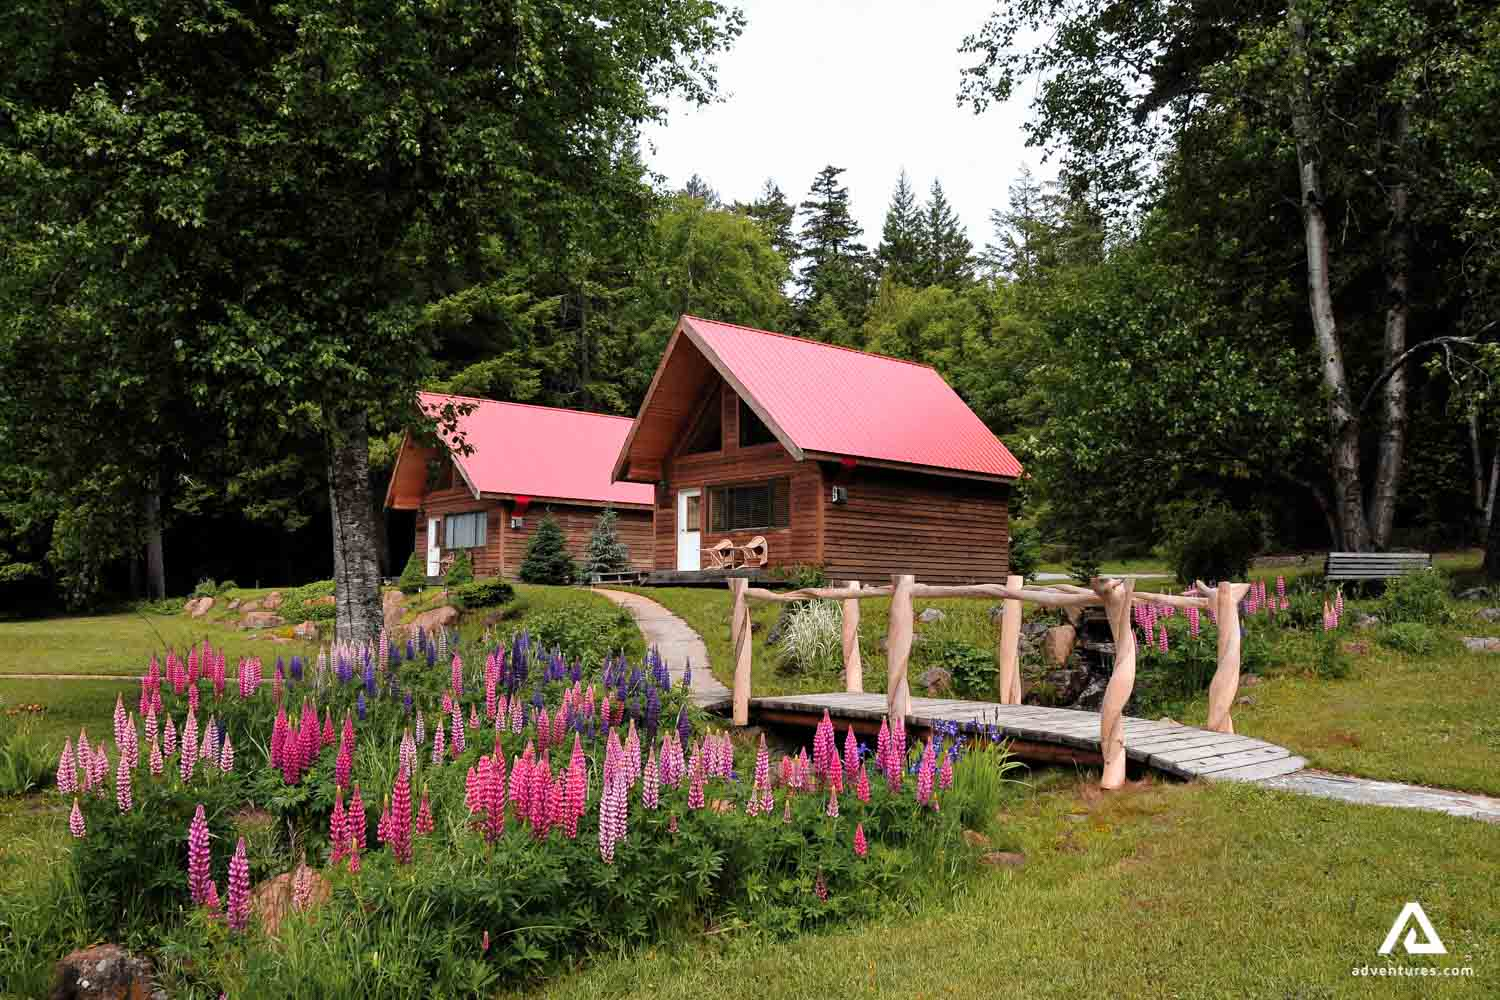 Summer vacation lodges with bridge and flowers around